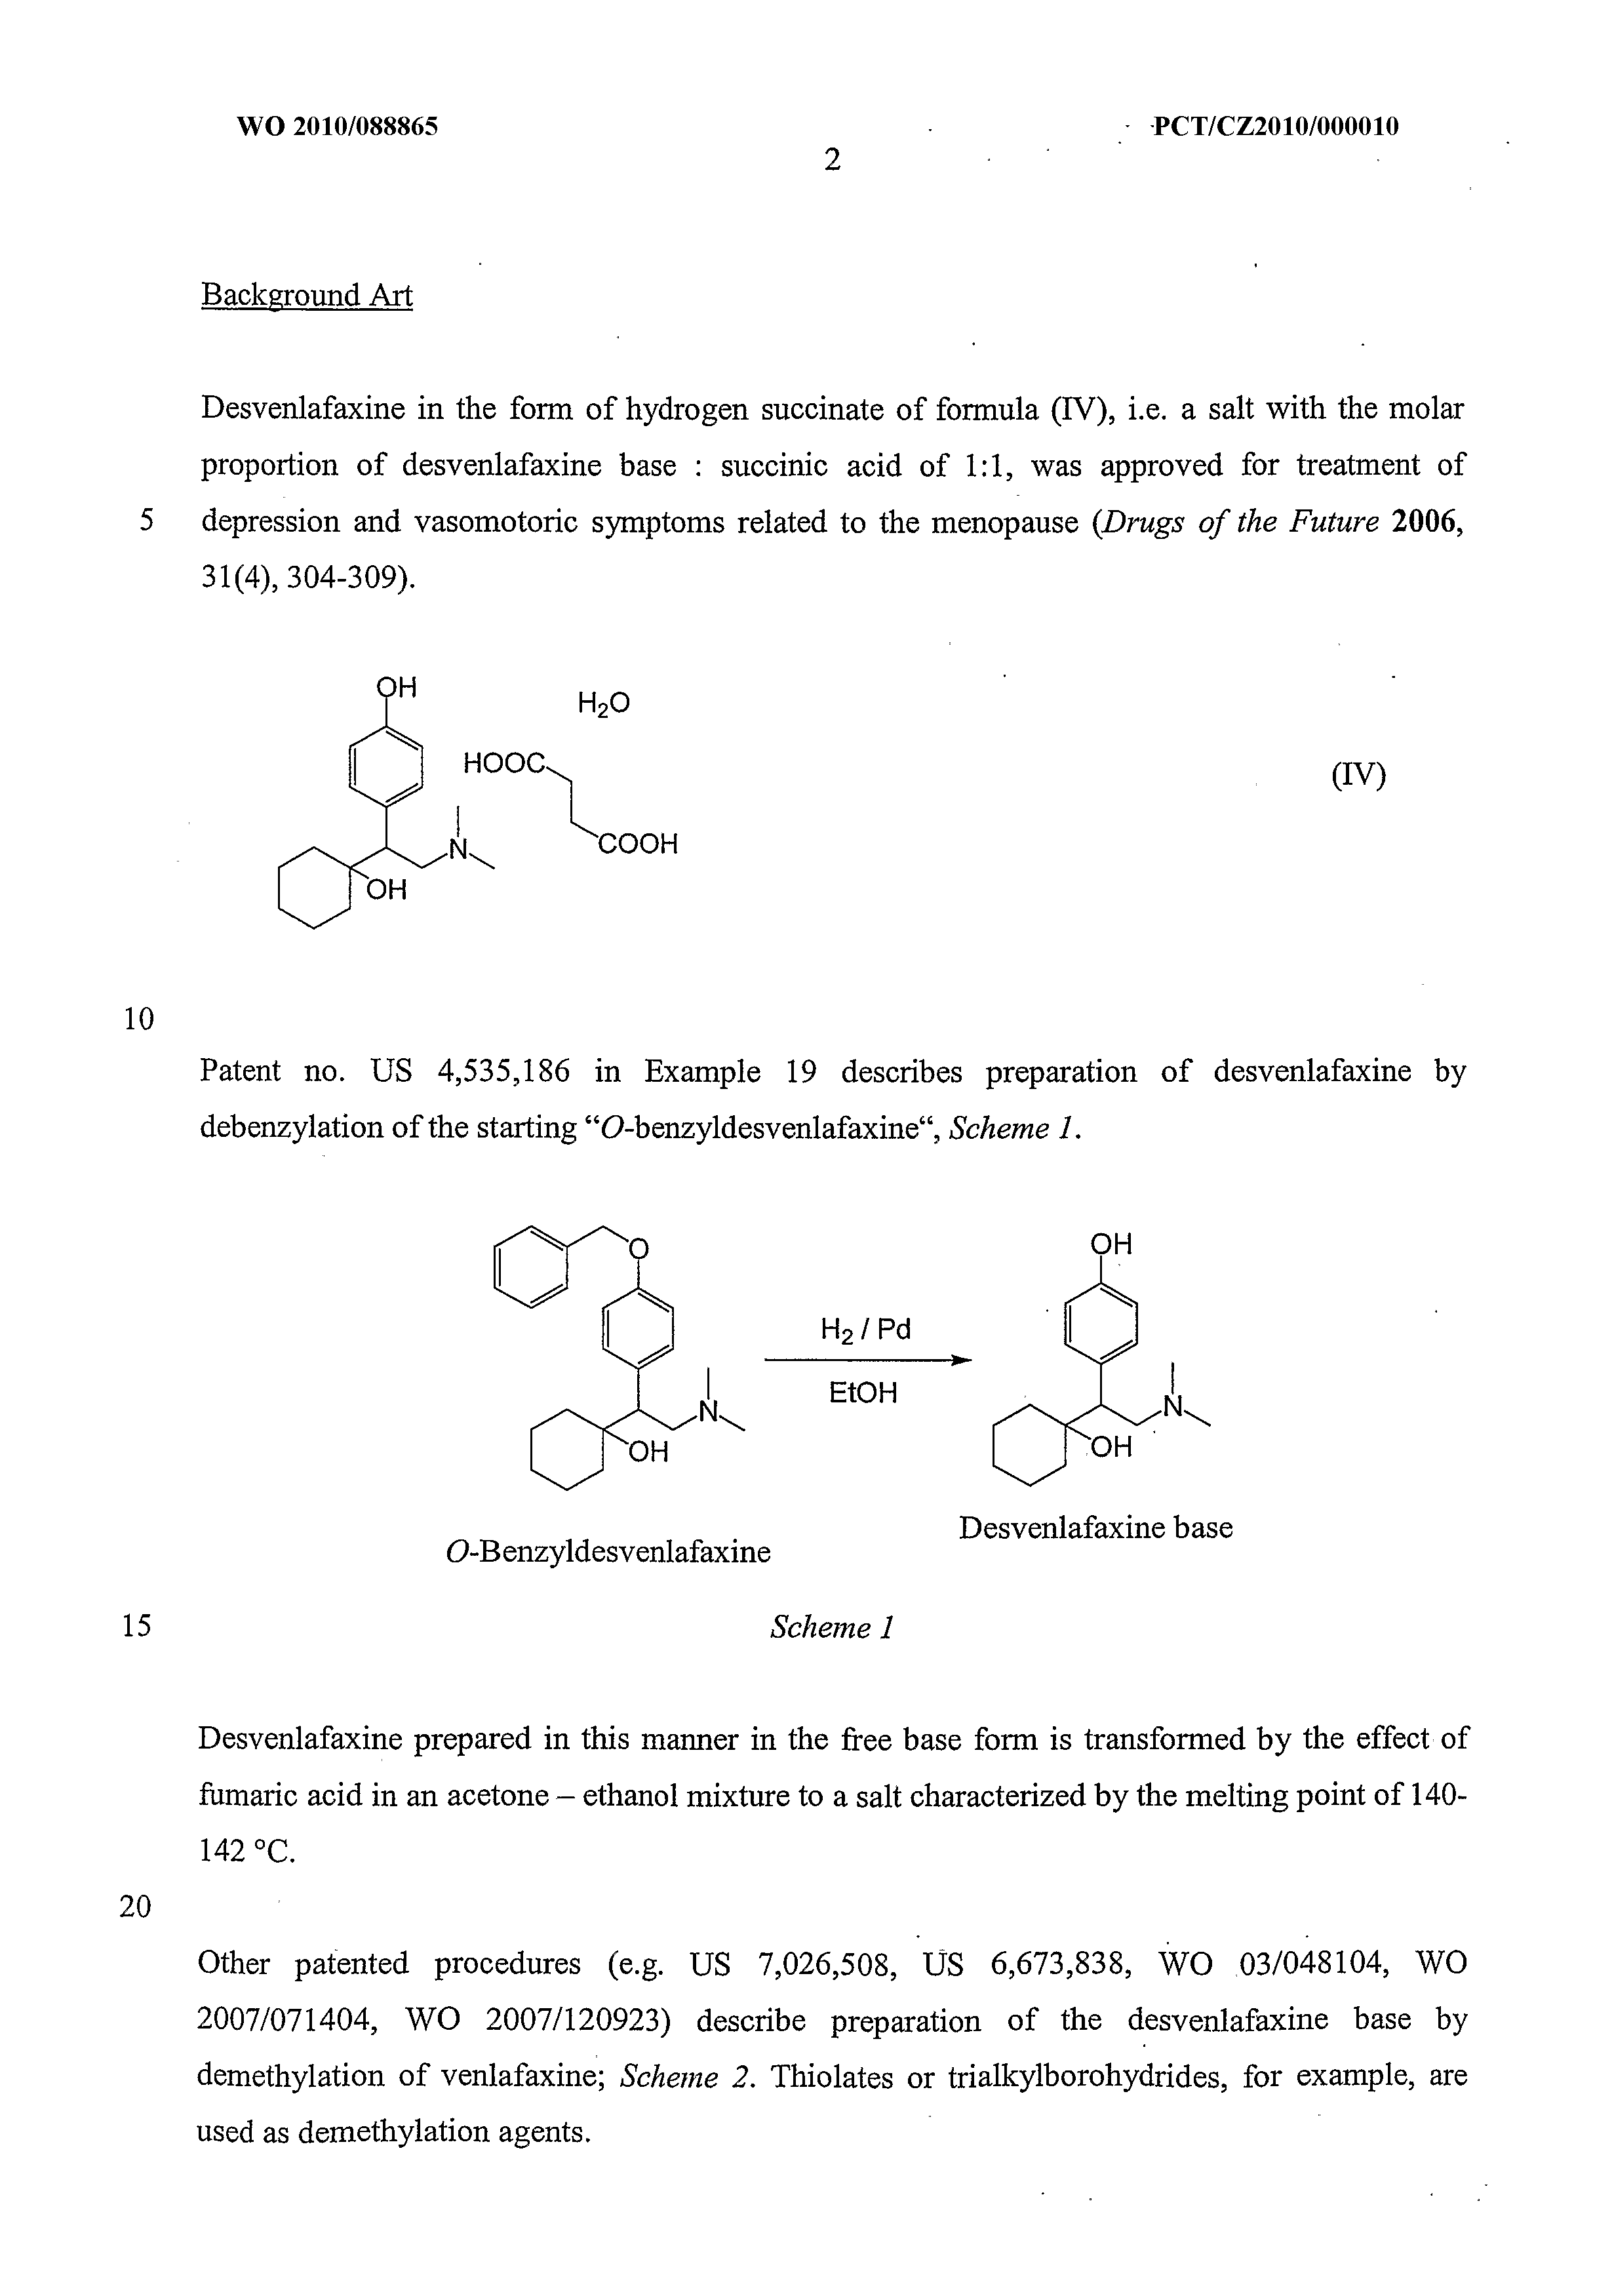 WO 2010/088865 A2 - New Salts Of Desvenlafaxine And A Method Of